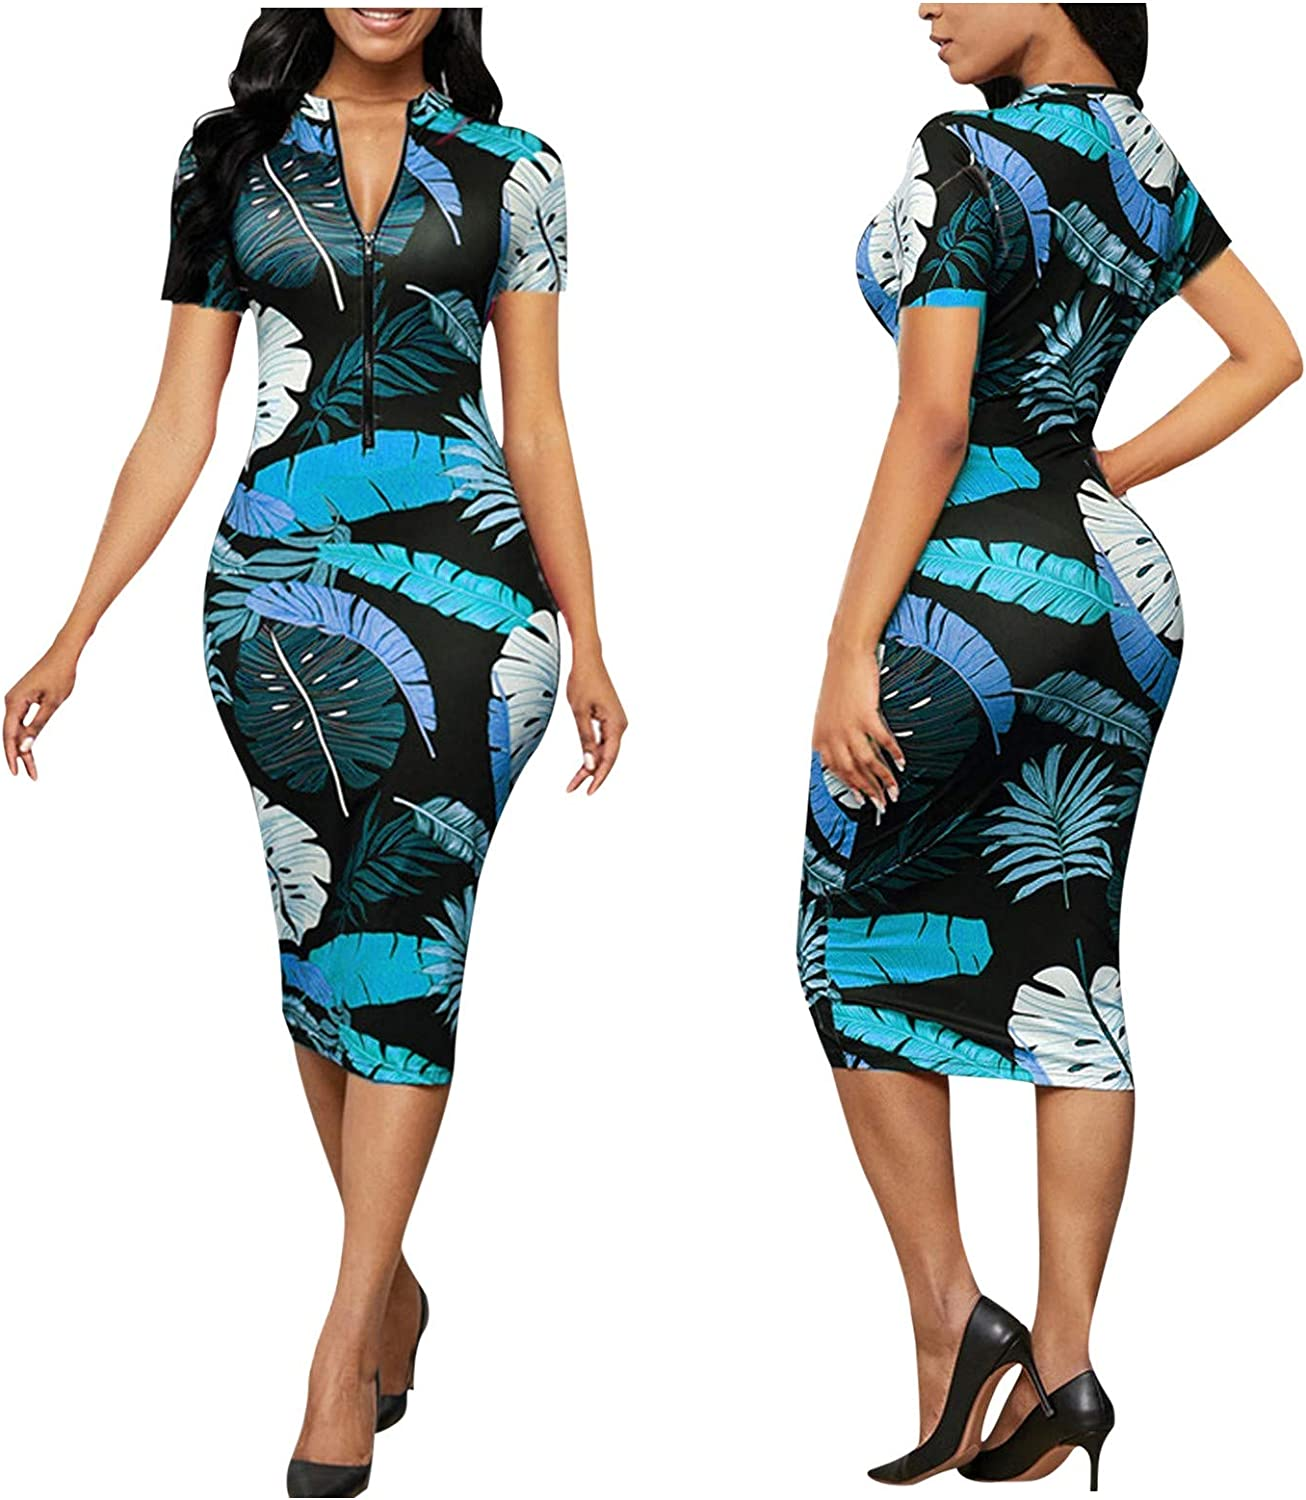 Jumpsuits for Women Casual Sexy, Women's Elegant Sheath Zip-up Leaf Feather Print Slim V Neck Knee Length Dress